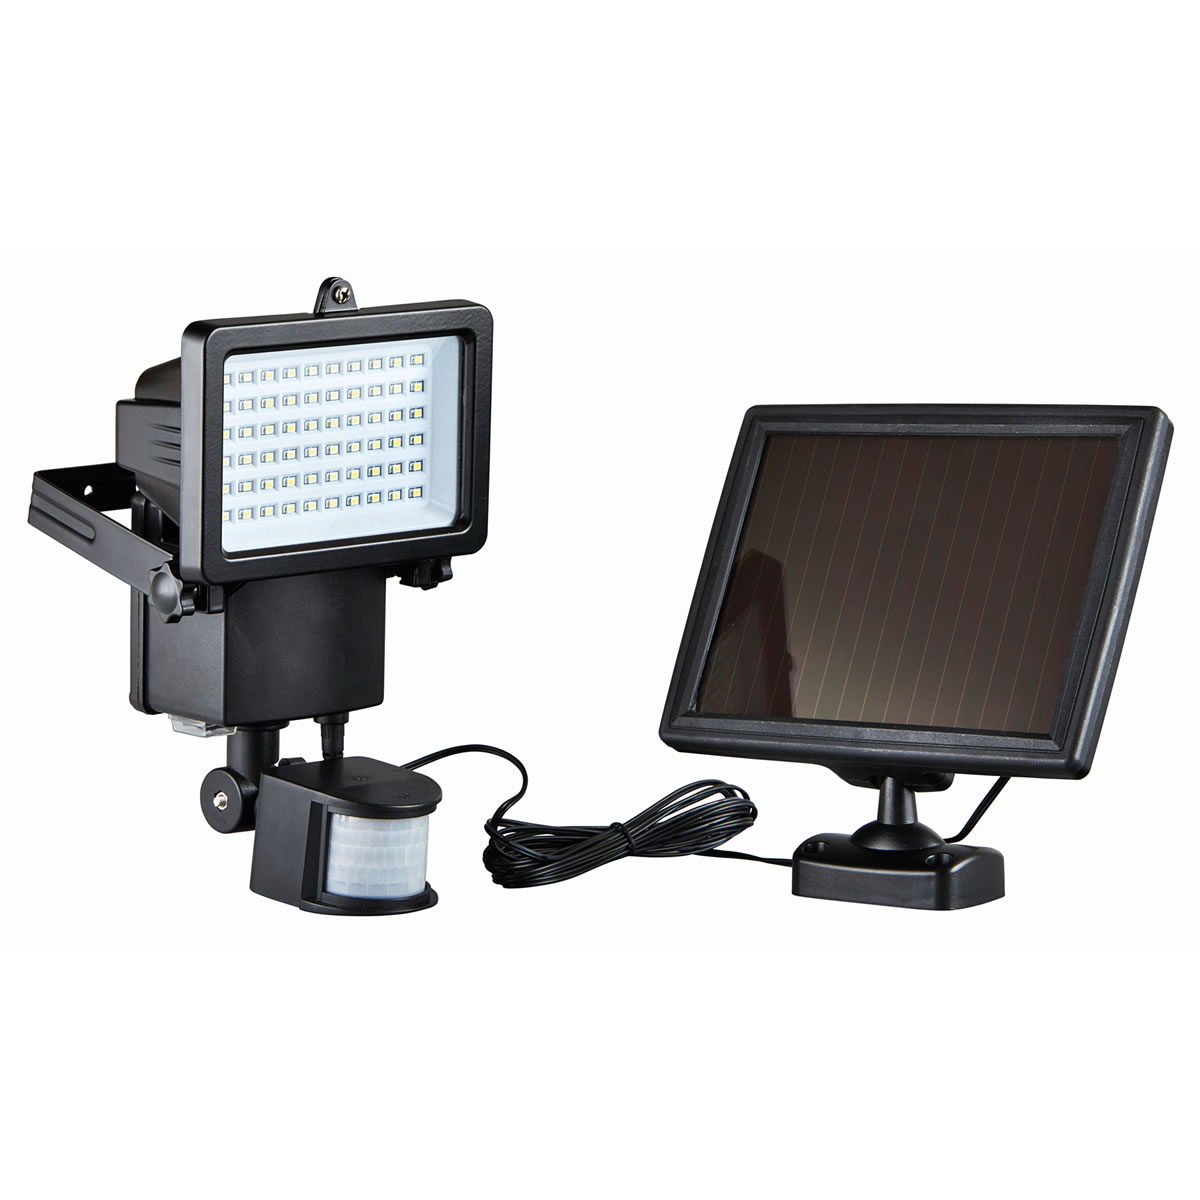 Extra image of Super Bright Millennium PIR Security Floodlight